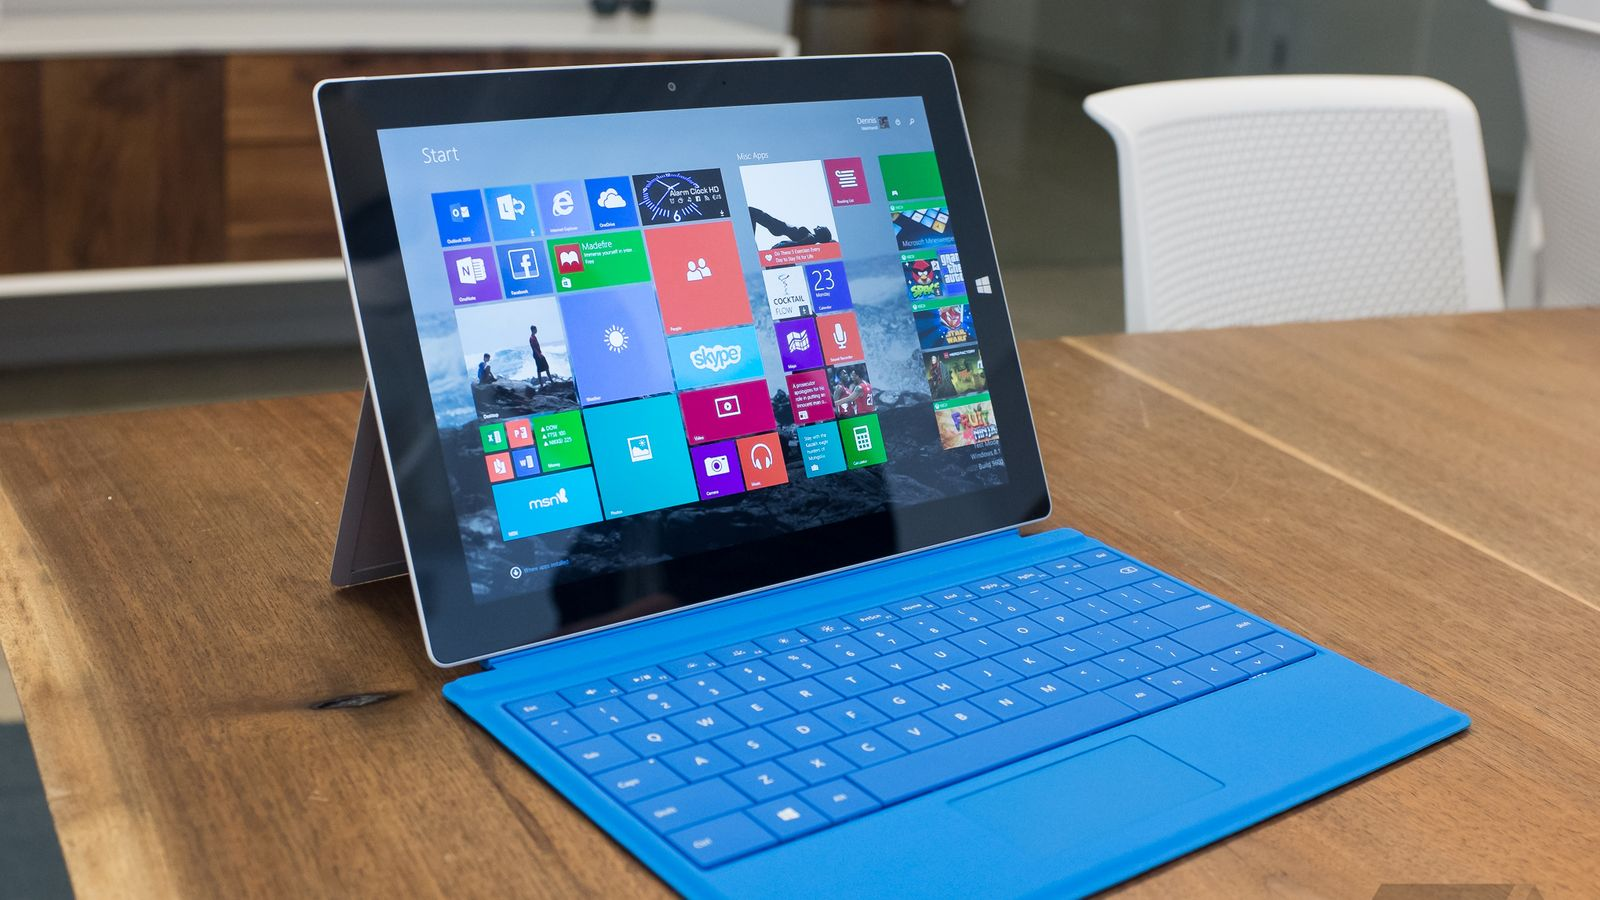 Surface 3 will no longer be available after December 2016